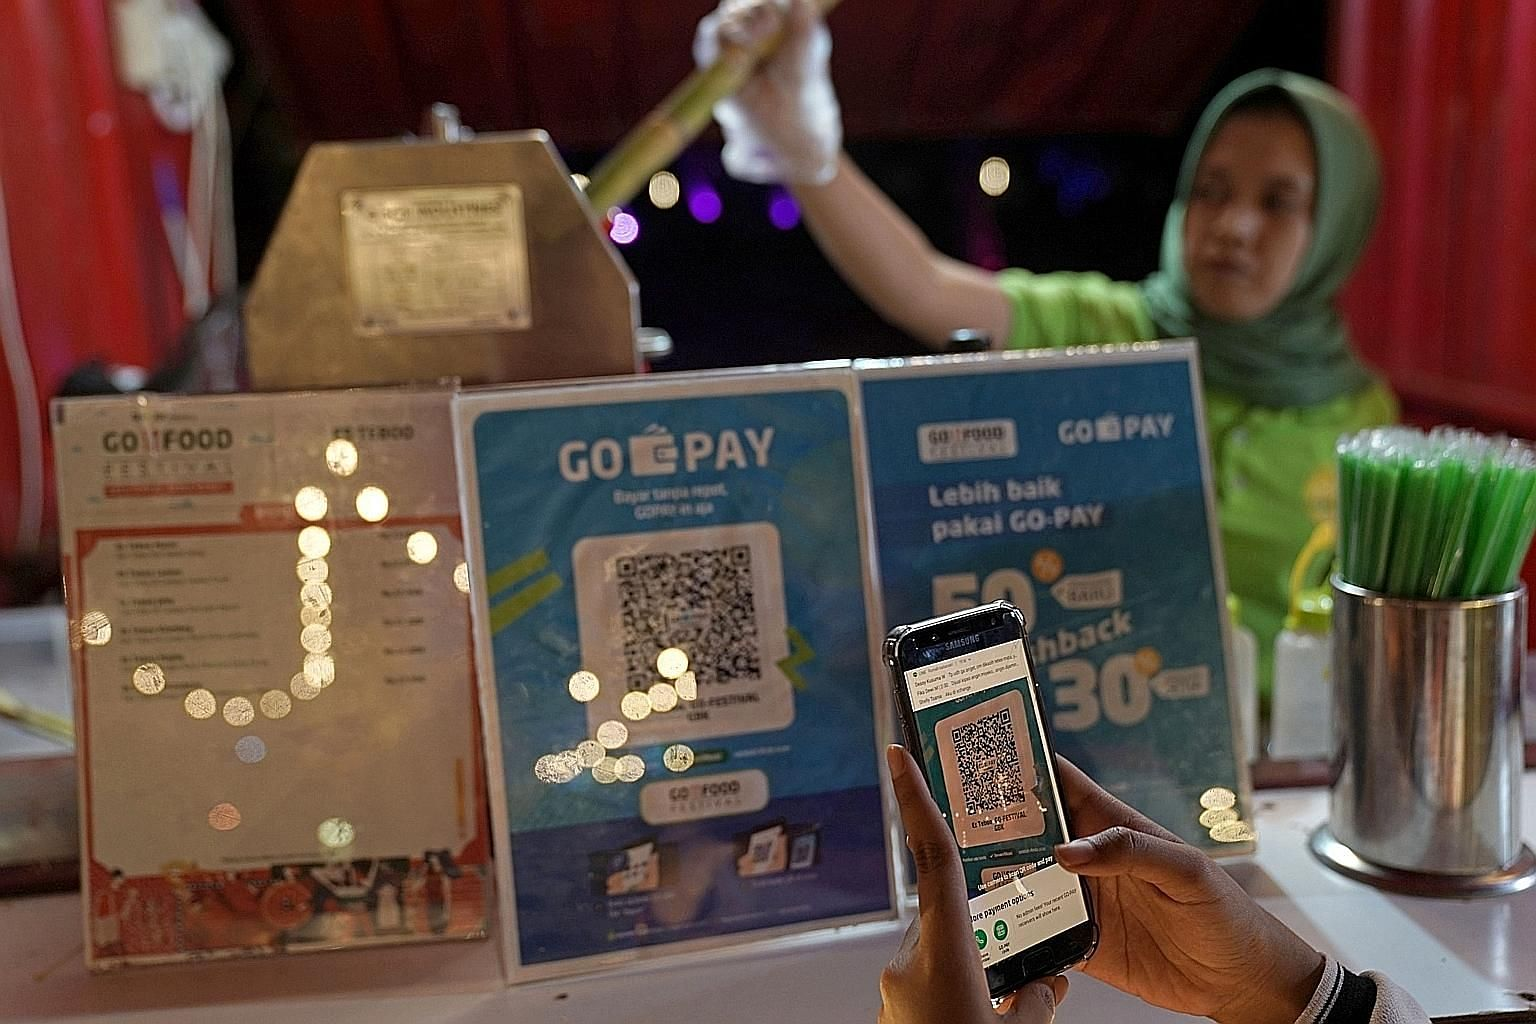 A customer using digital payment at a stall at the Go-Food Festival in Jakarta last year. Financial technology is booming in Indonesia, beginning with digital payments, says the writer, adding that there is a natural synergy of digital payments with